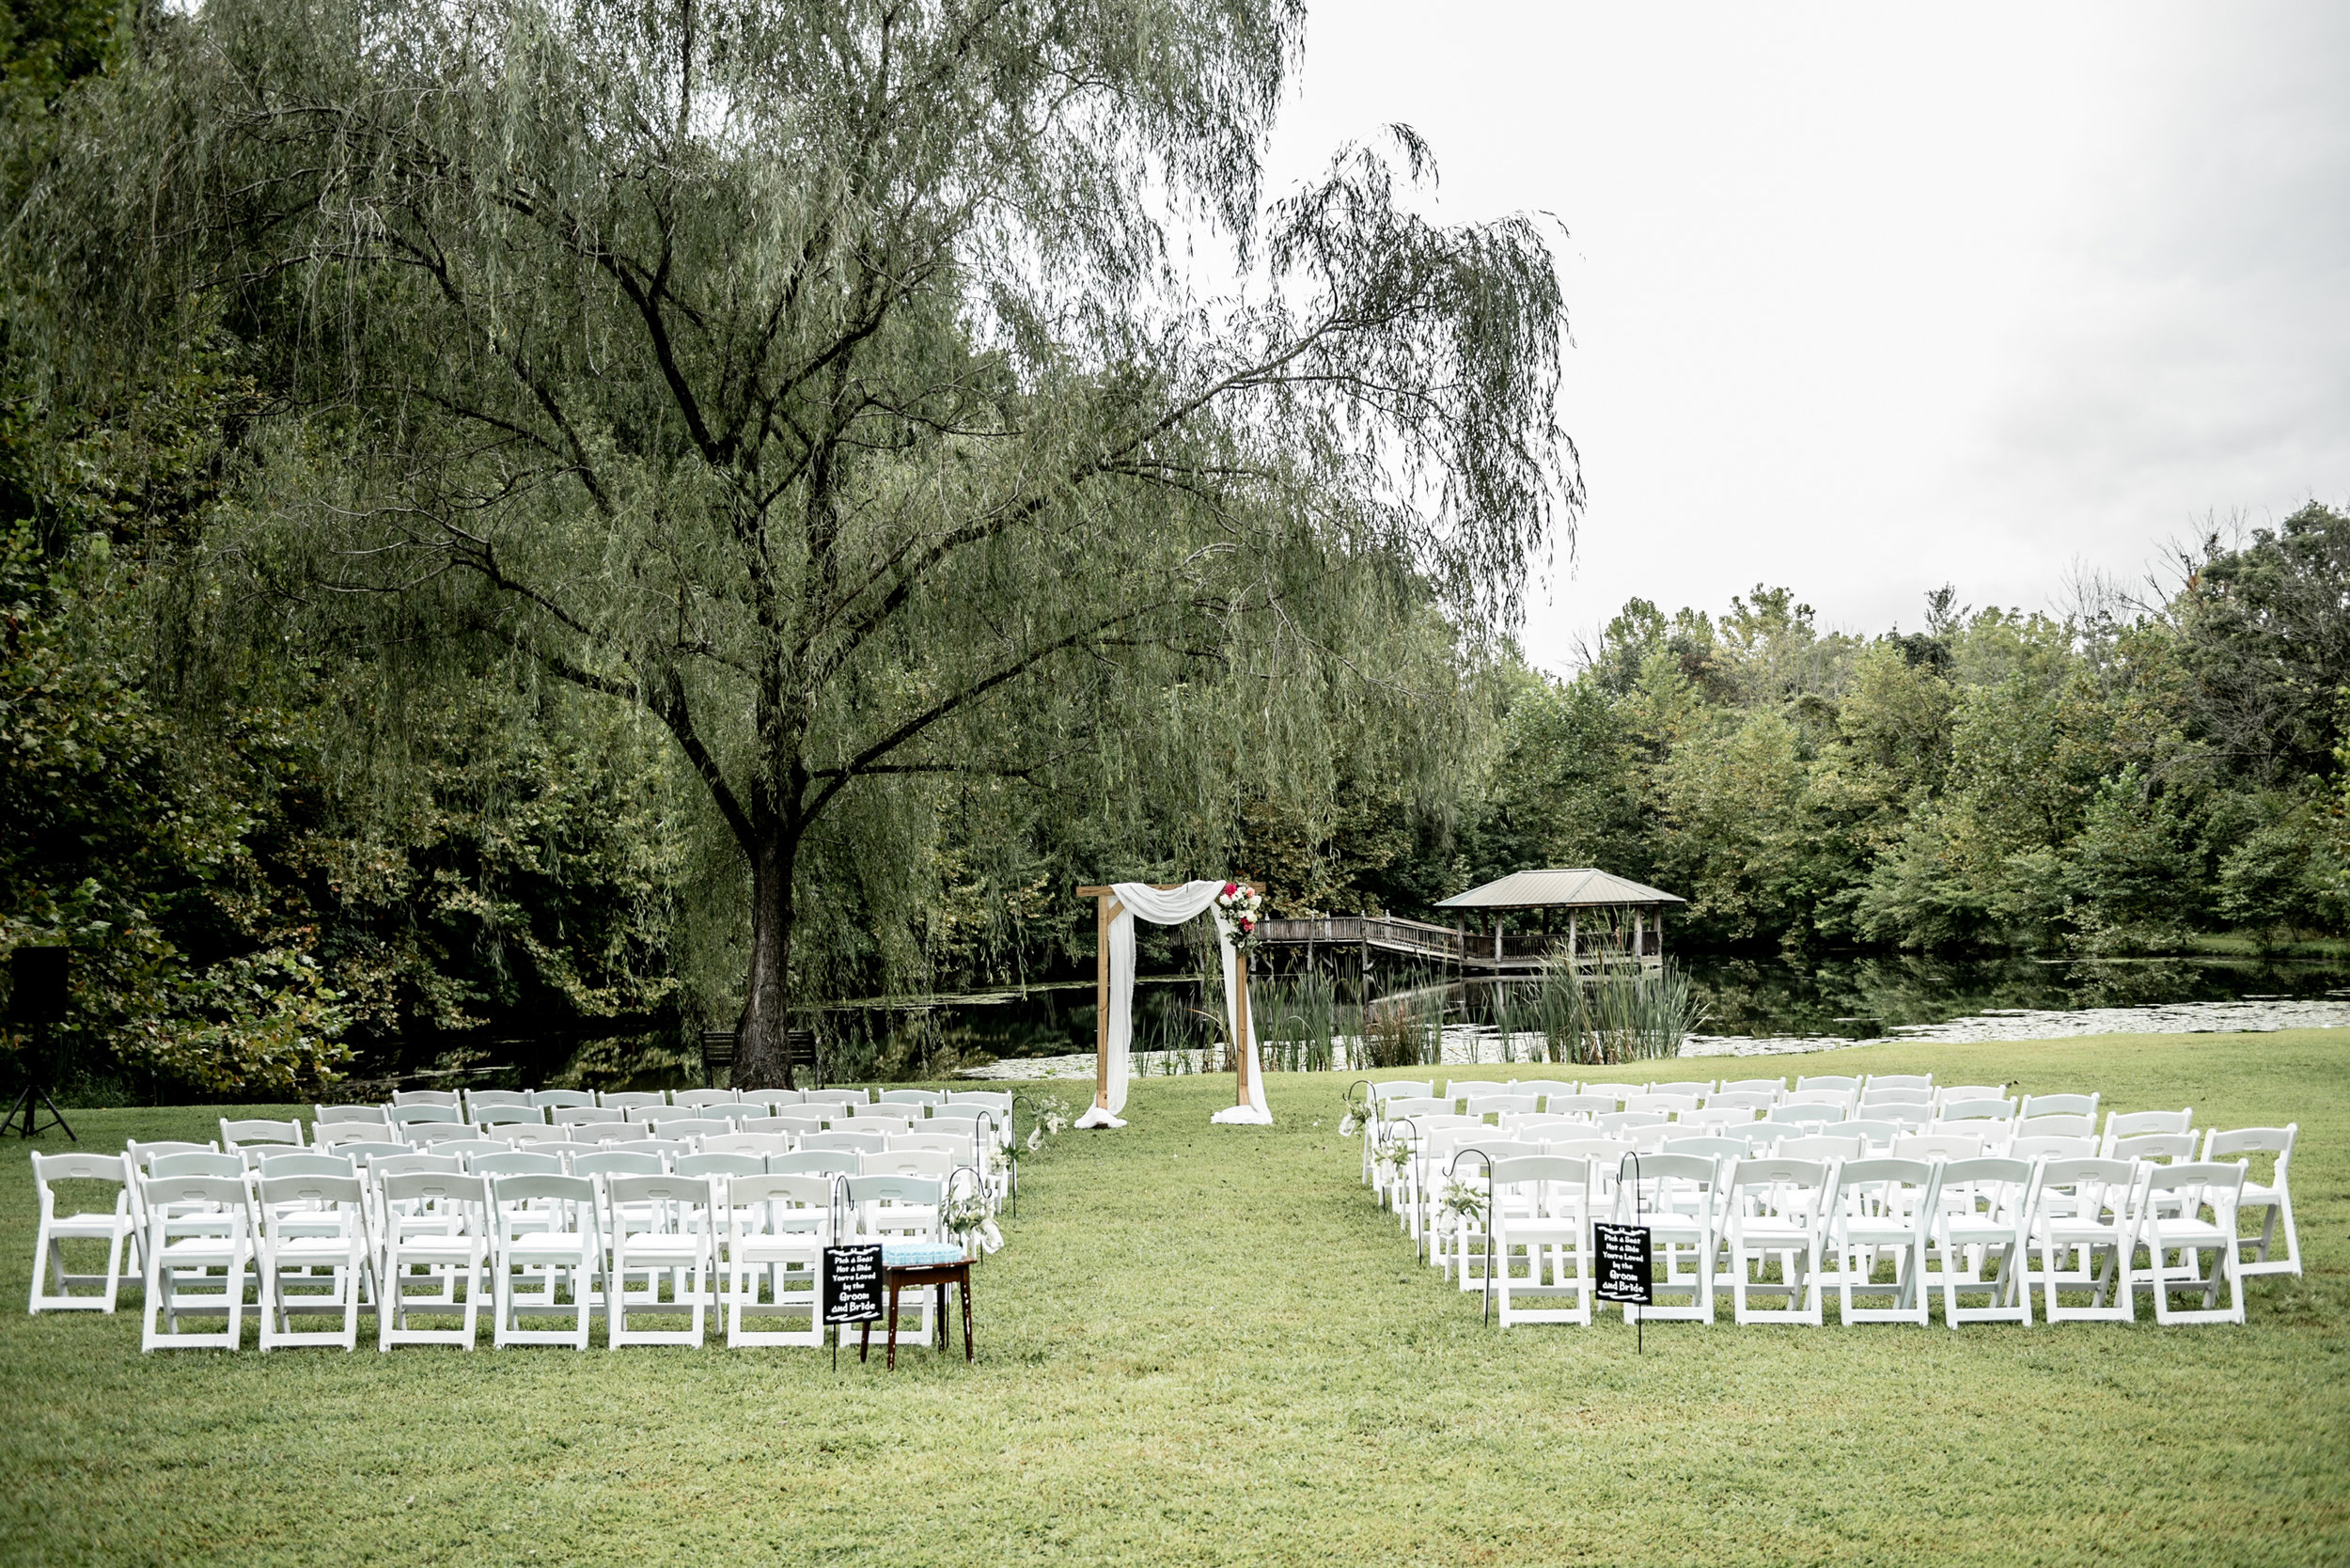 Romantic wedding ceremony under willow tree by pond